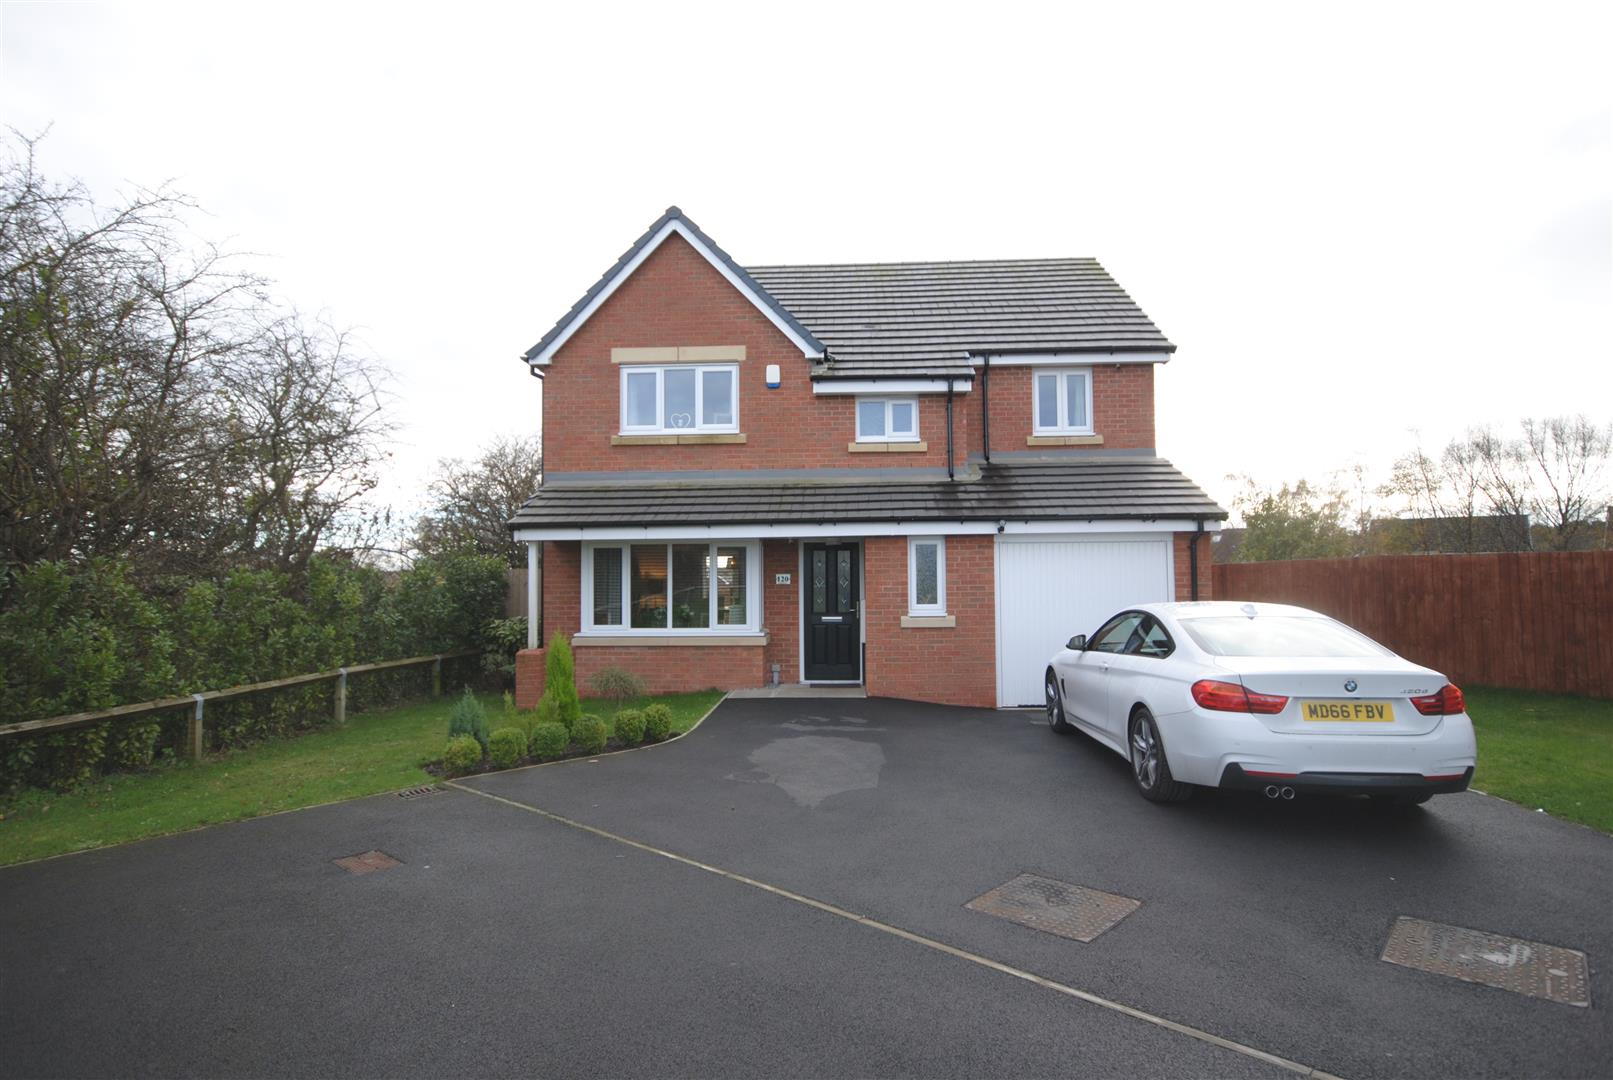 4 Bedrooms Detached House for sale in Meadow Brook, Pemberton, Wigan